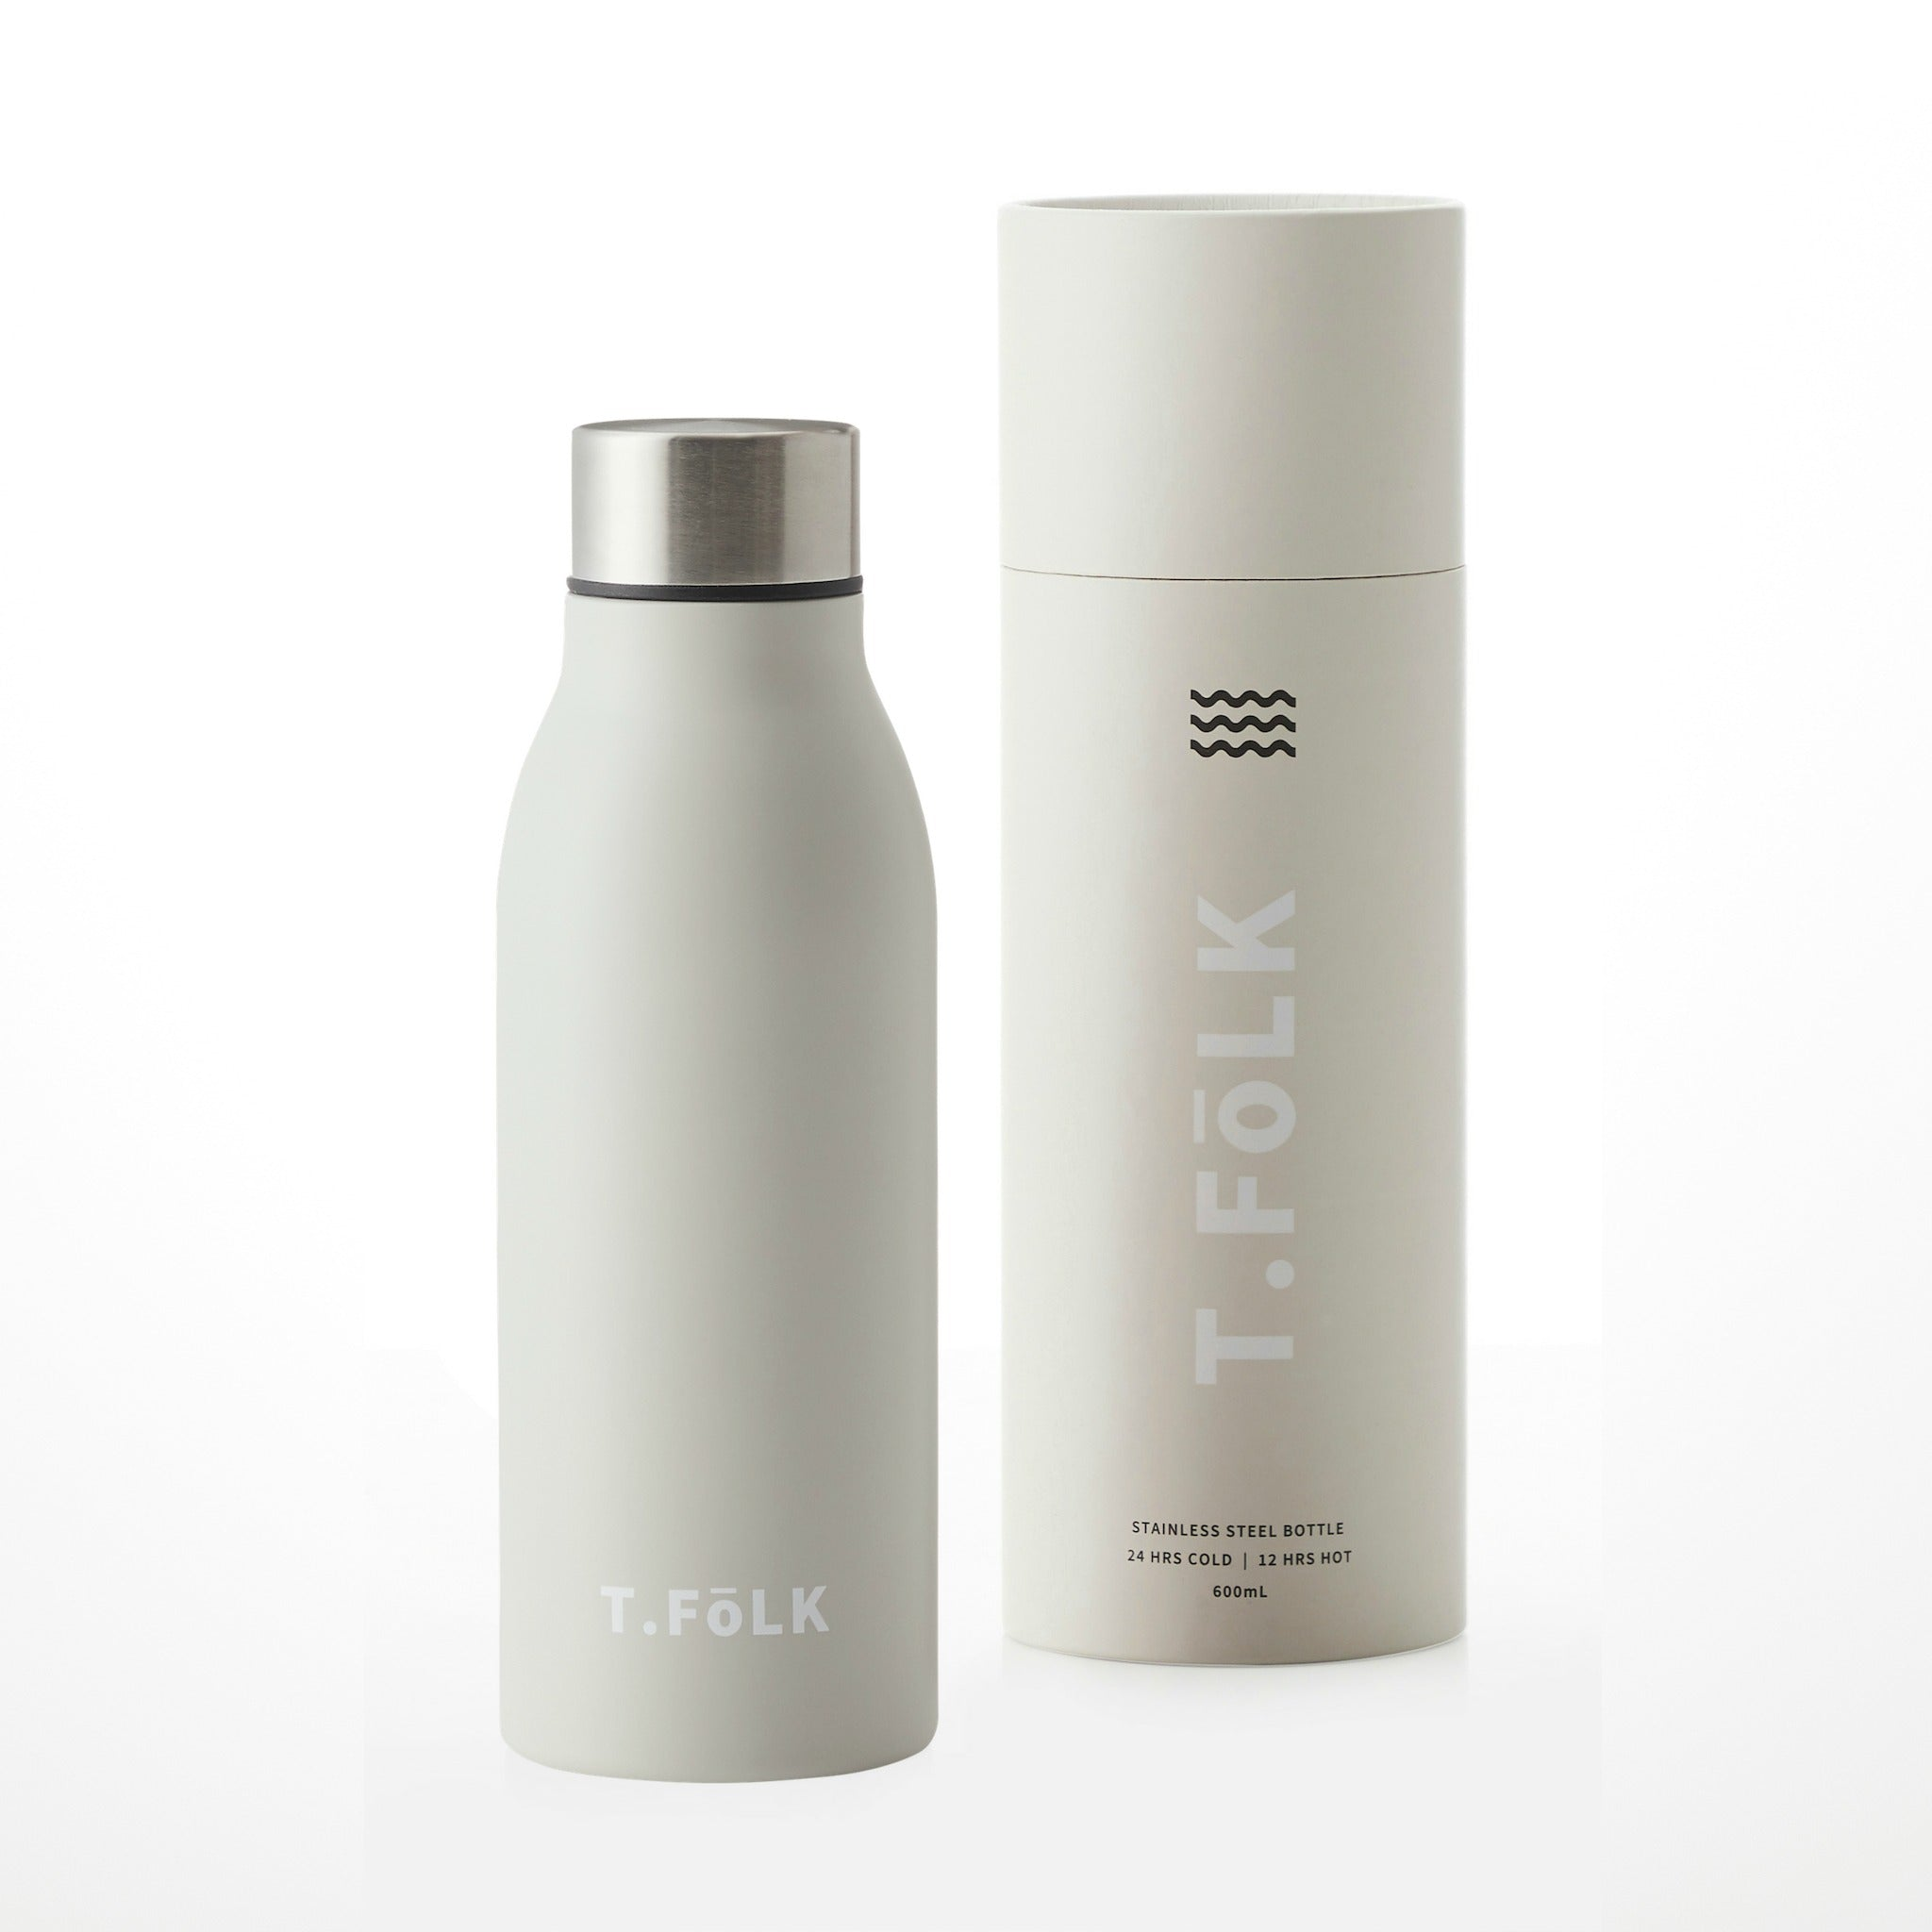 Stainless Steel Insulated Water Bottle Matte Warm Grey Neutral Australia with gifting tube